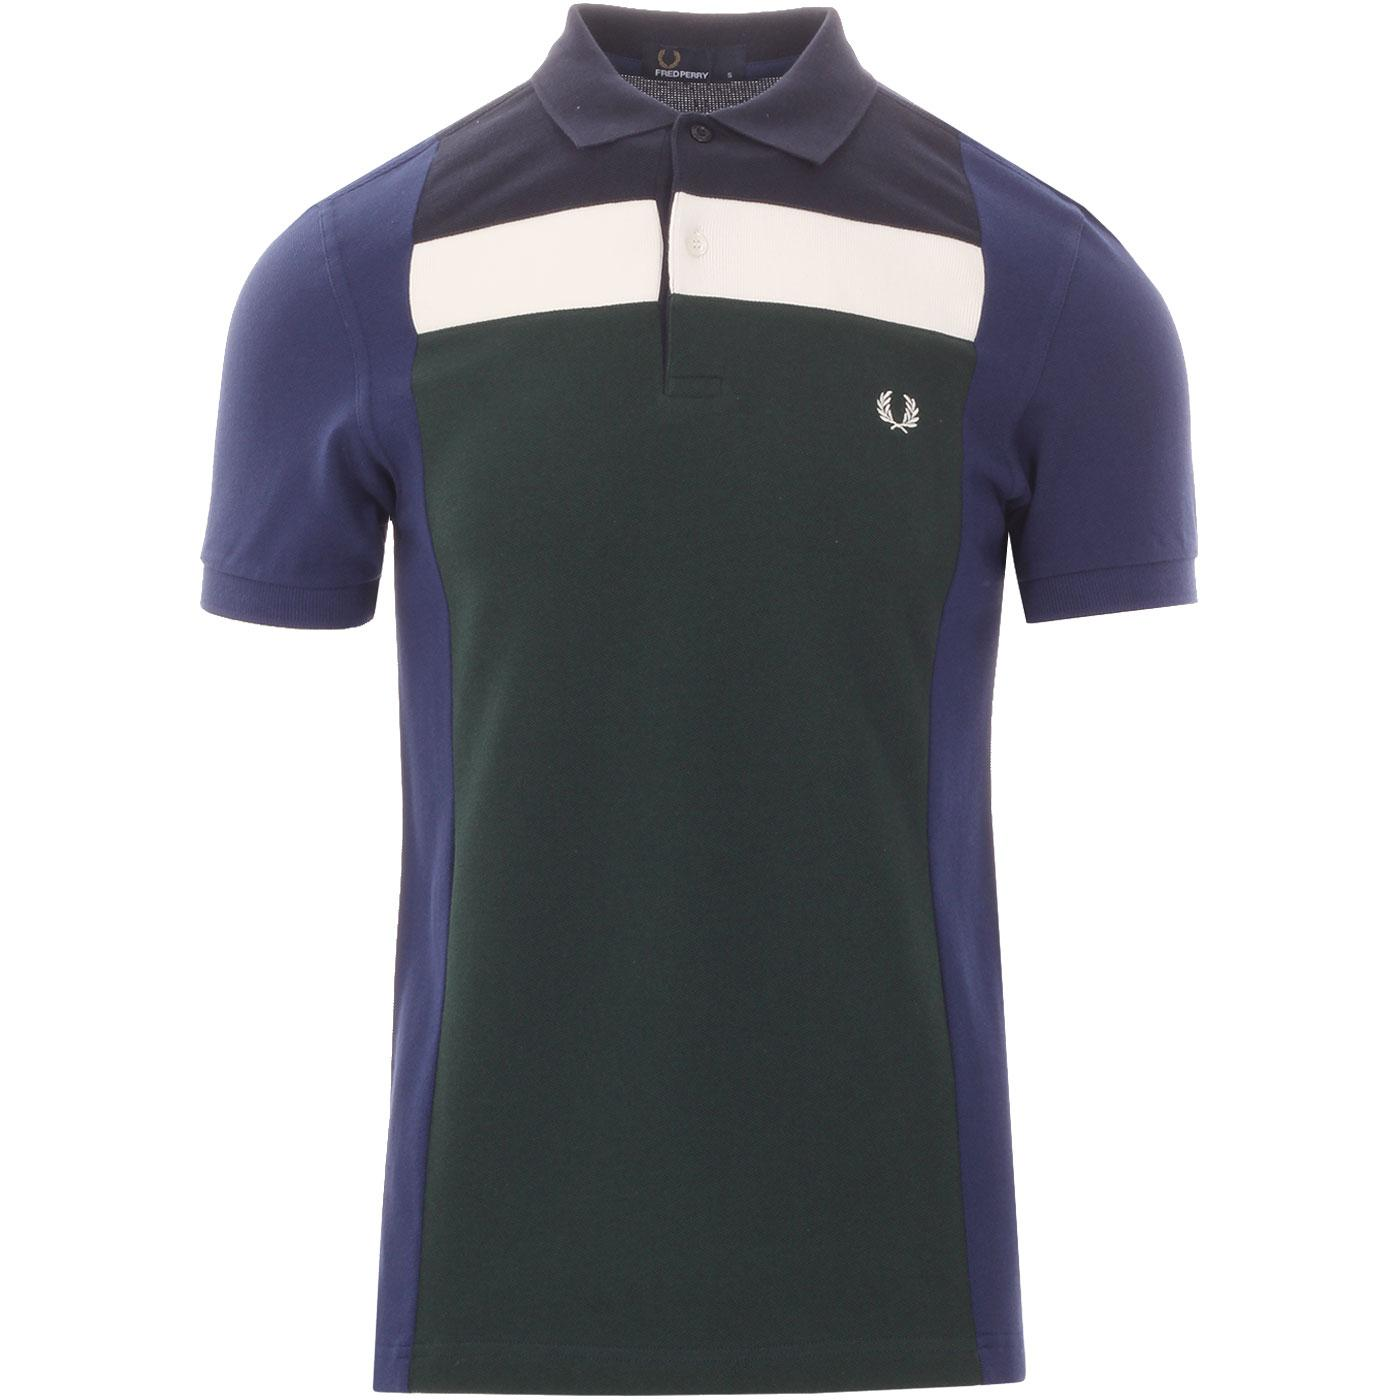 FRED PERRY Men's Mod Block Panel Pique Polo Shirt